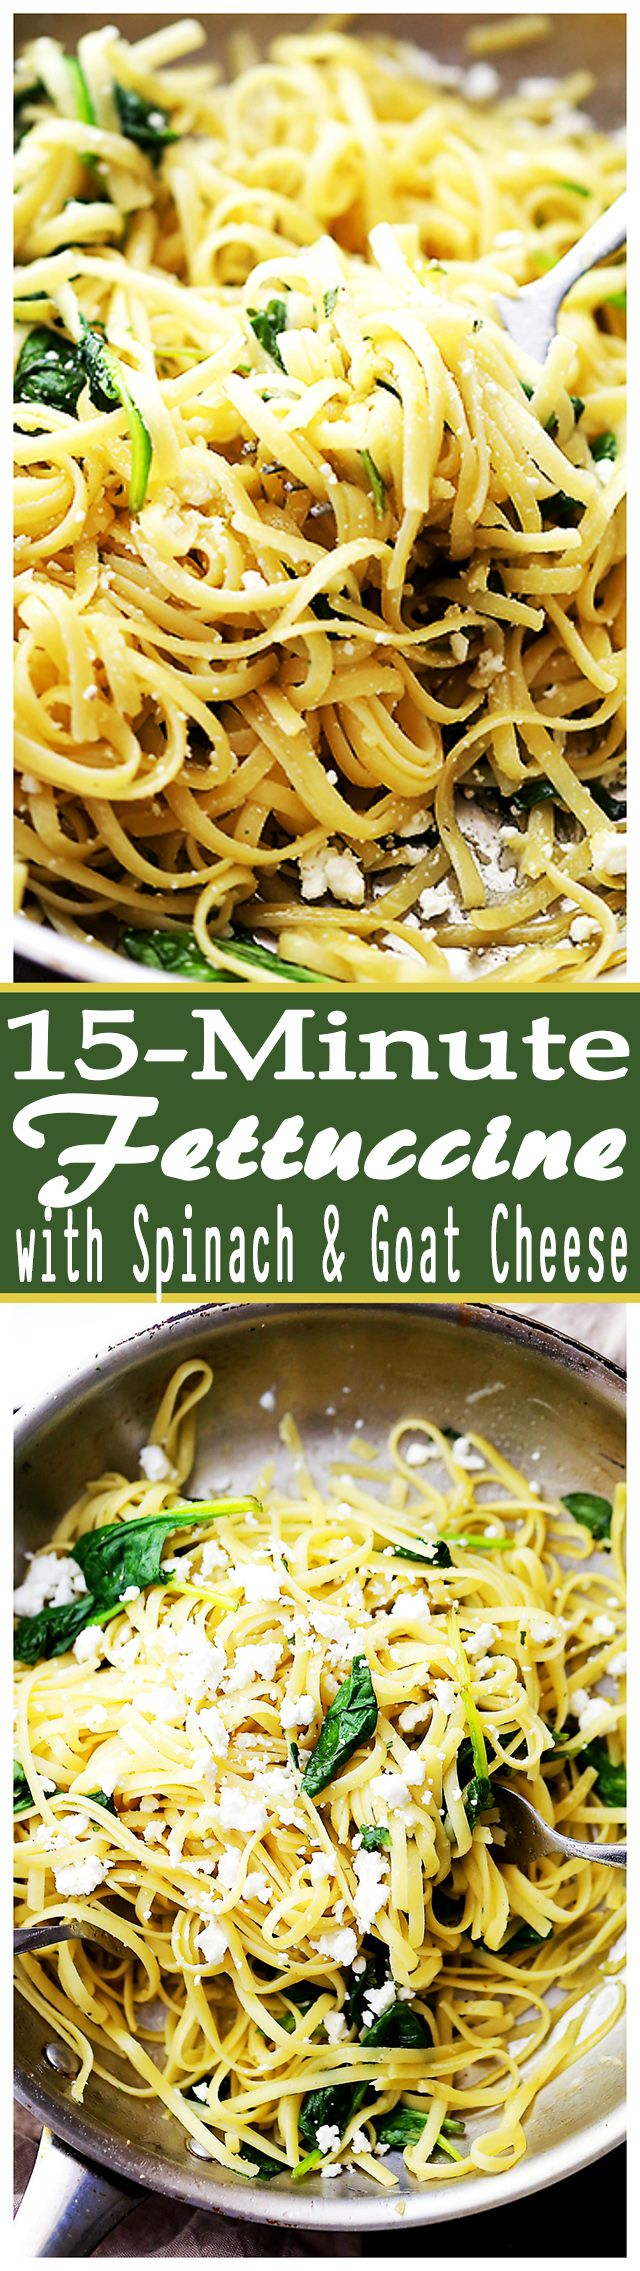 15-Minute Fettuccine with Spinach and Goat Cheese - Quick, flavorful and light pasta dinner with spinach and goat cheese that melts as it's tossed with the warm and delicious pasta.